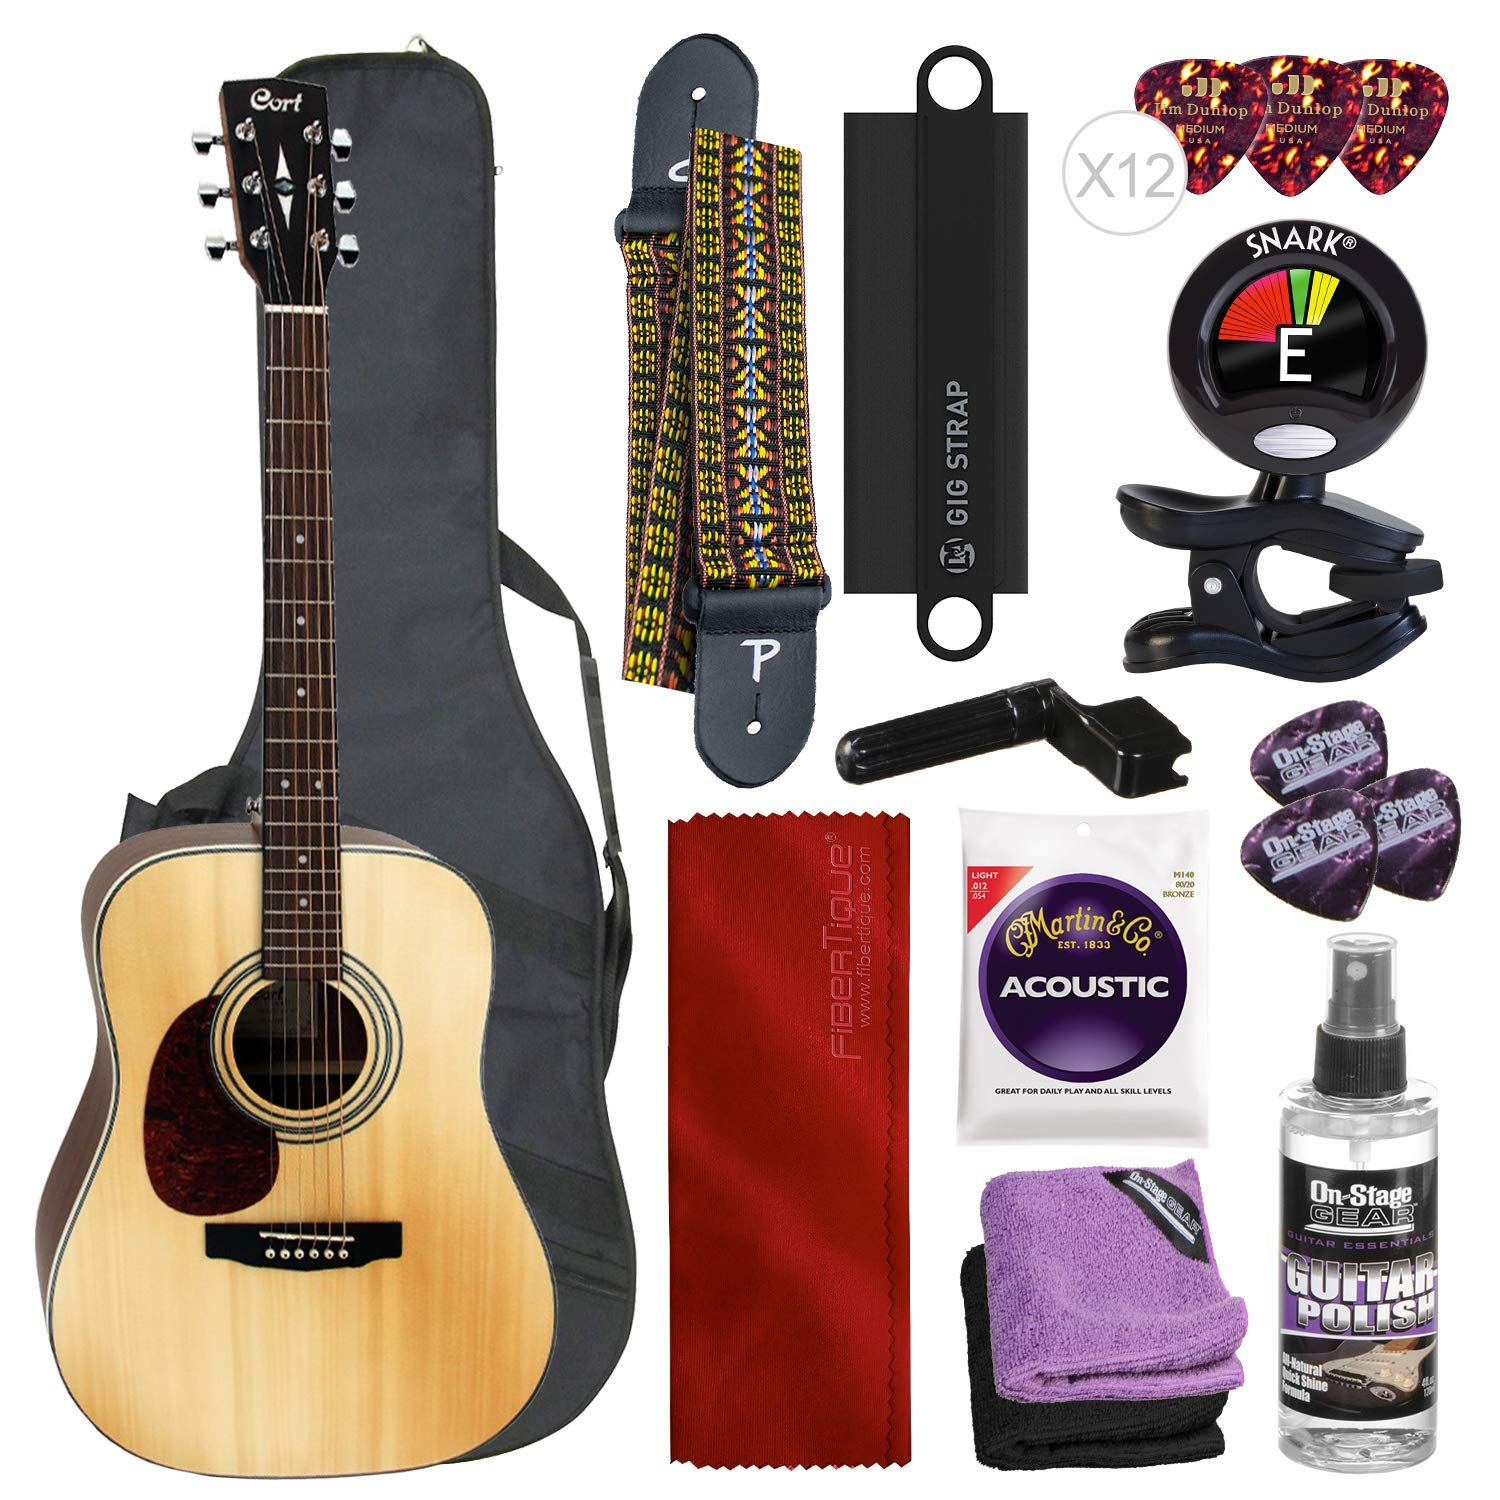 Cort Earth Series Earth70 Dreadnought Acoustic Guitar with Gig Bag, Tuner, Strings, Picks and Deluxe Bundle by Cort